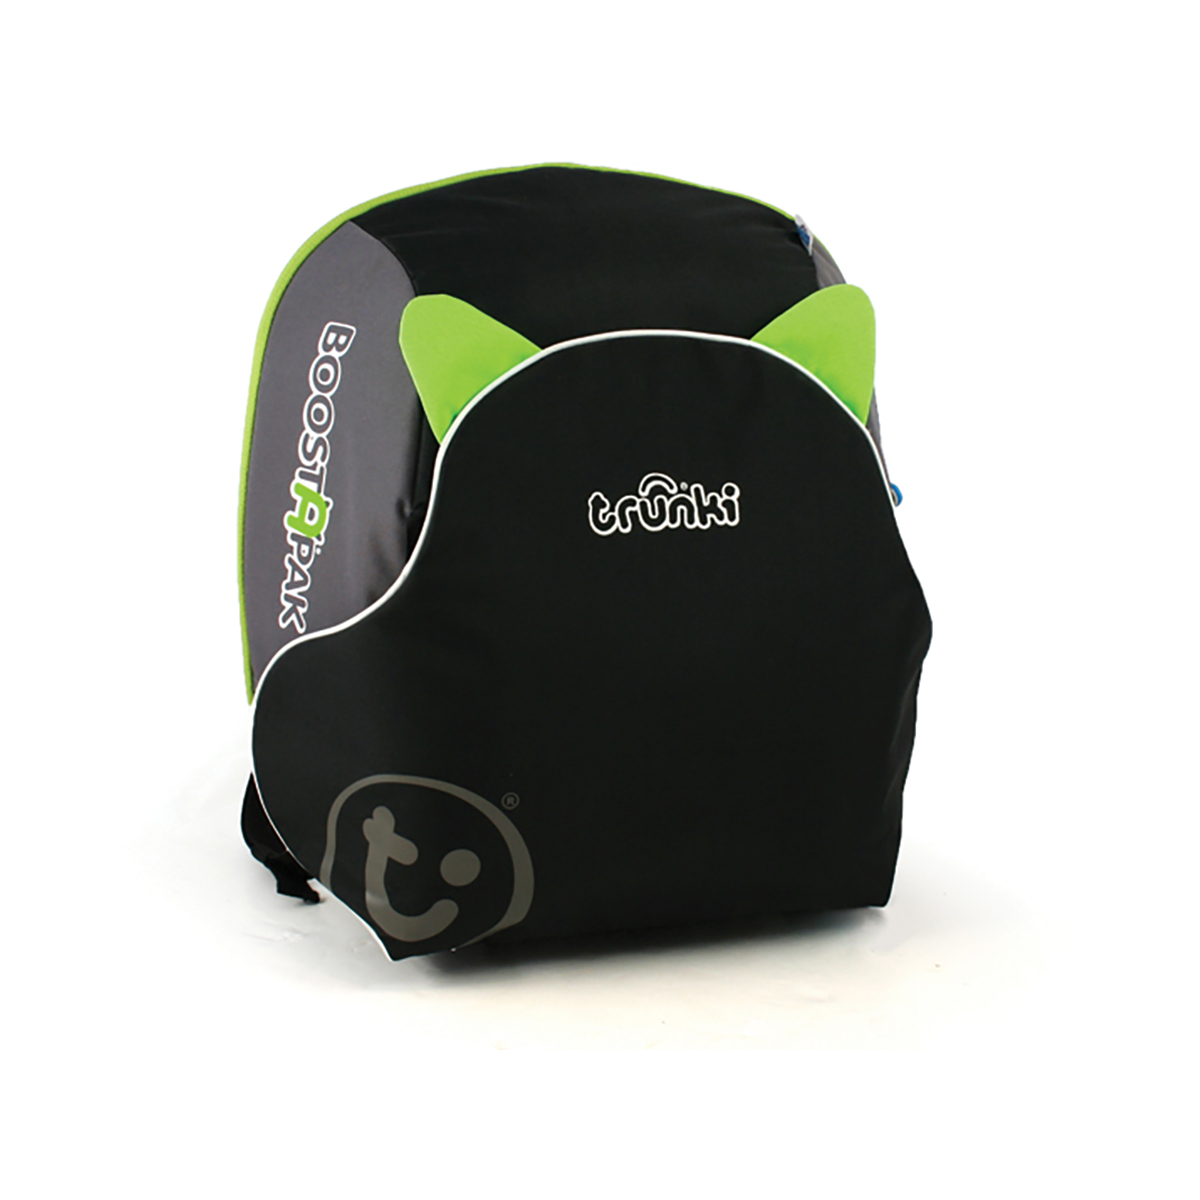 Rucsac si inaltator auto BoostApak Trunki, Verde imagine 2021